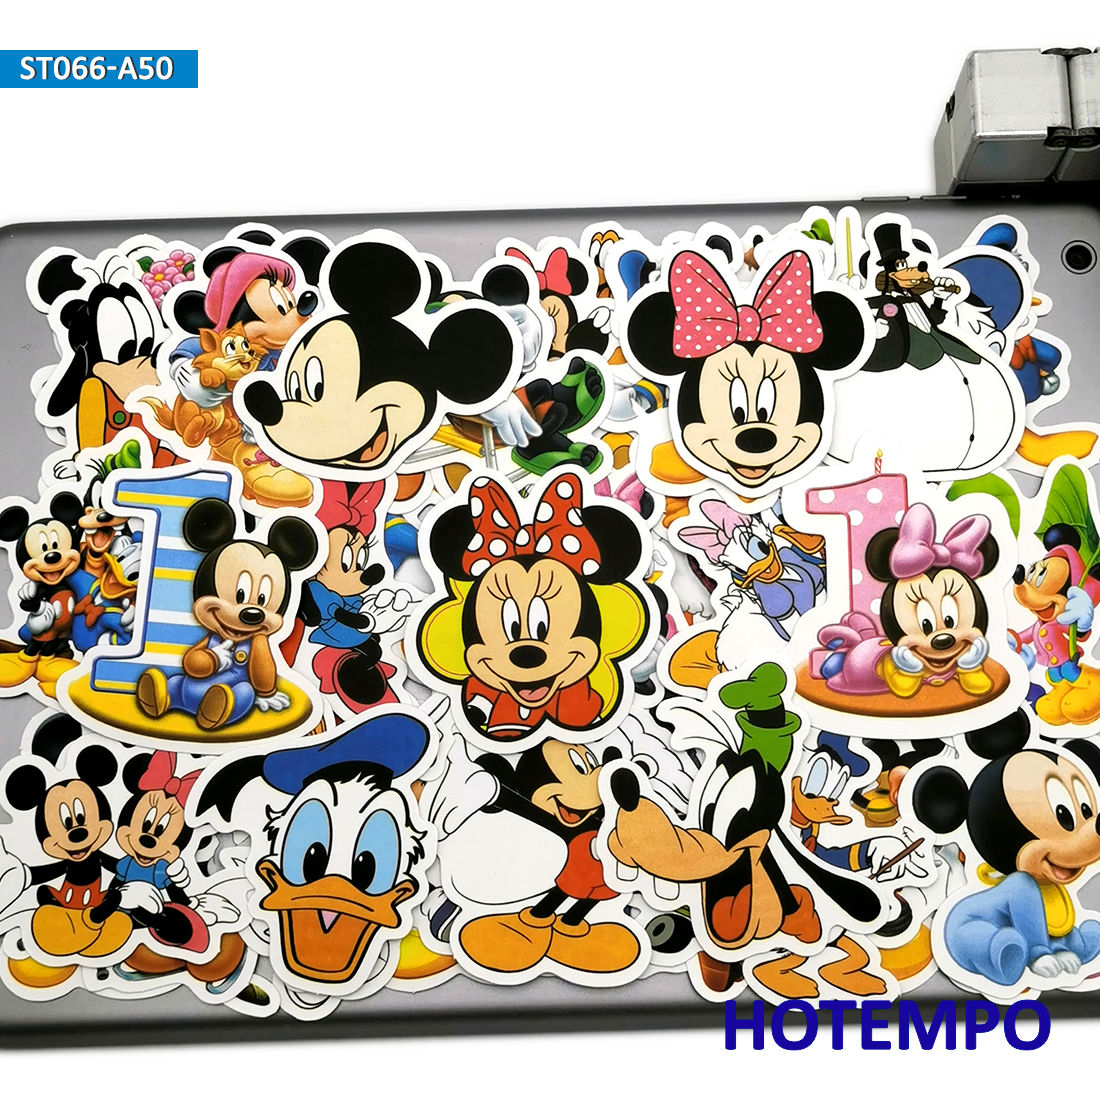 50pcs Cute Minnie Mickey Anime Stickers Toys For Children Kids Scrapbook Stationery Mobile Phone Laptop Suitcase Decal Stickers